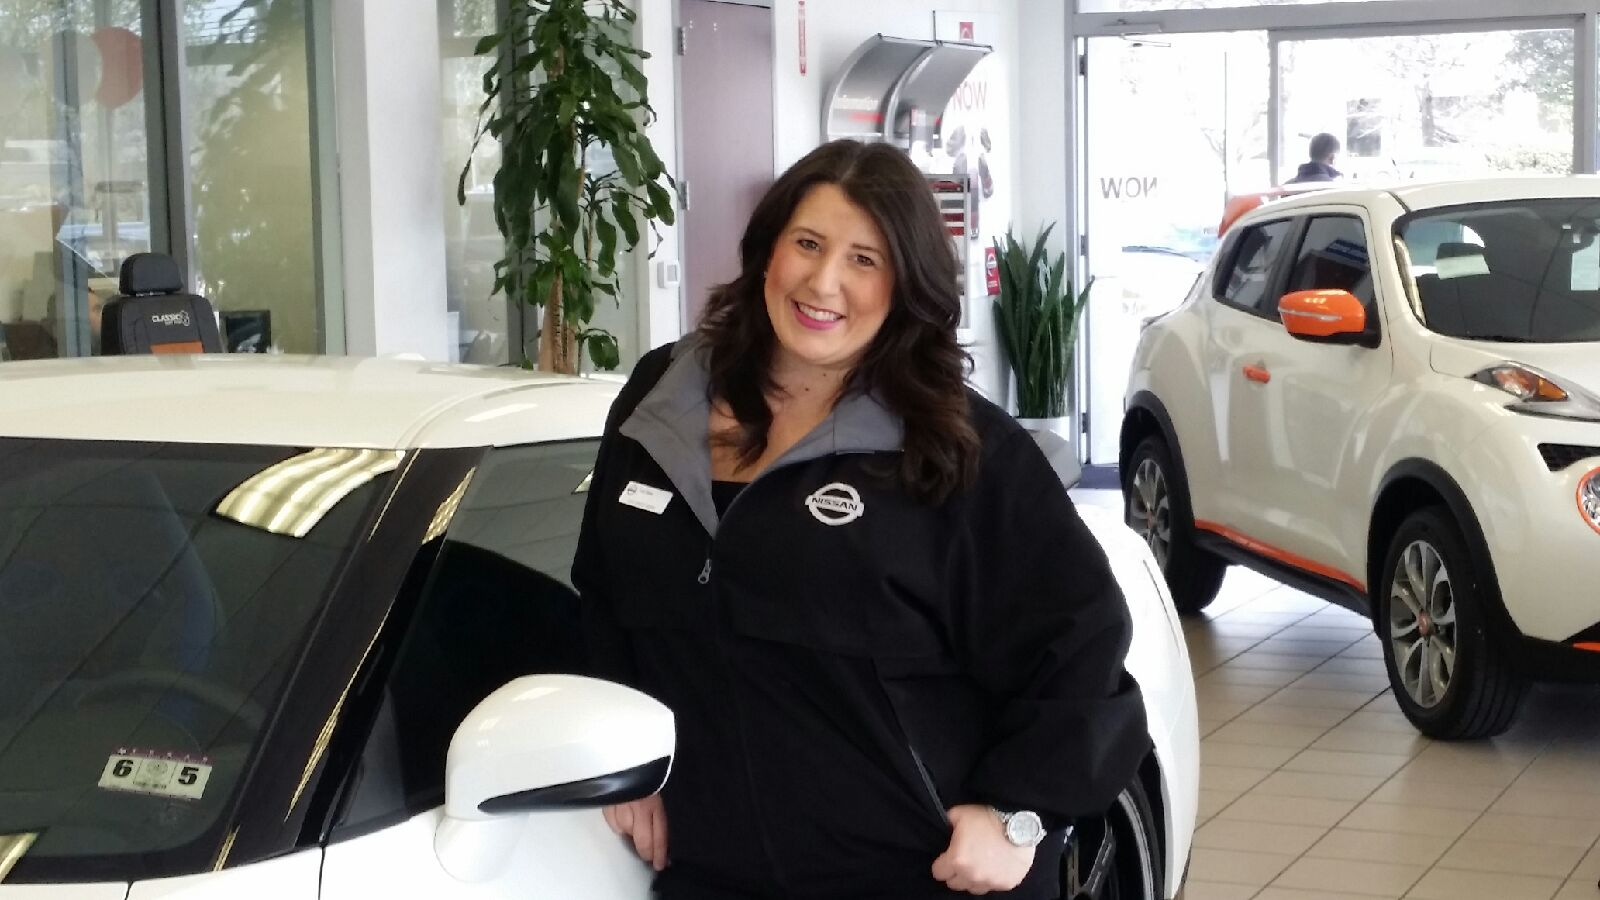 south austin nissan clay cooley nissan austin february employee spotlight. Black Bedroom Furniture Sets. Home Design Ideas